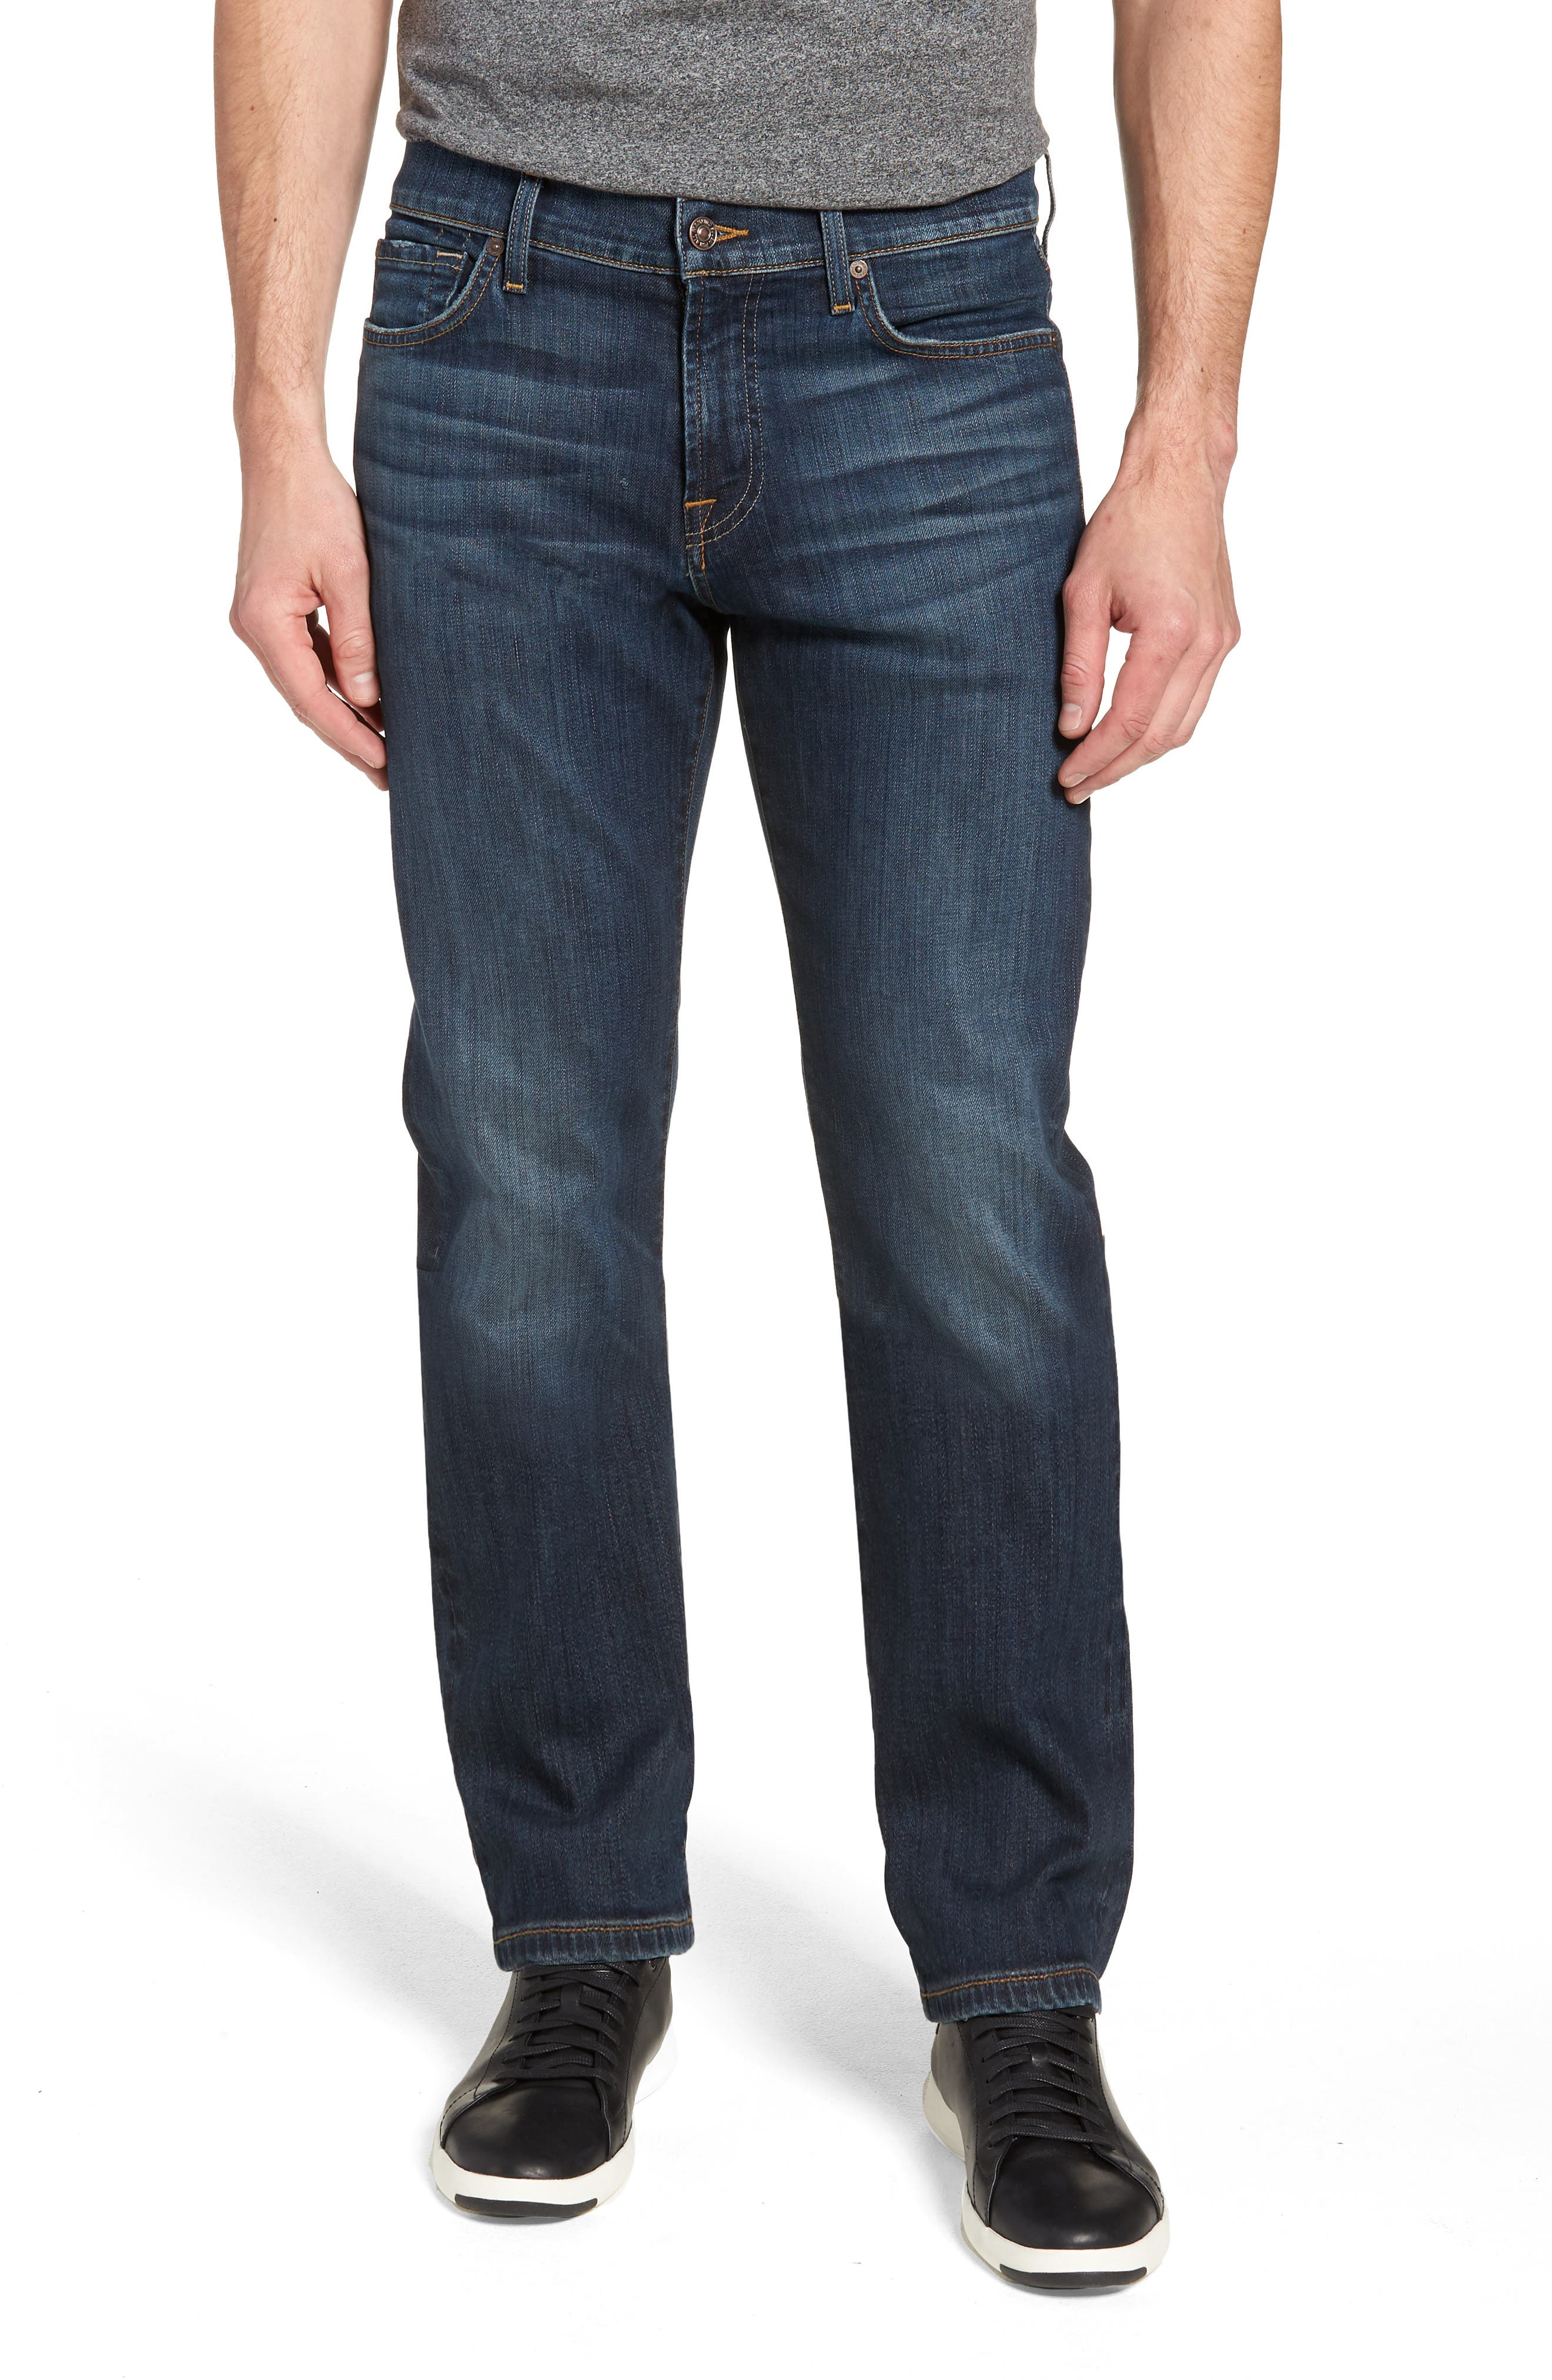 Luxe Performance Standard Straight Leg Jeans,                         Main,                         color, LUXE PERFORMANCE YELM